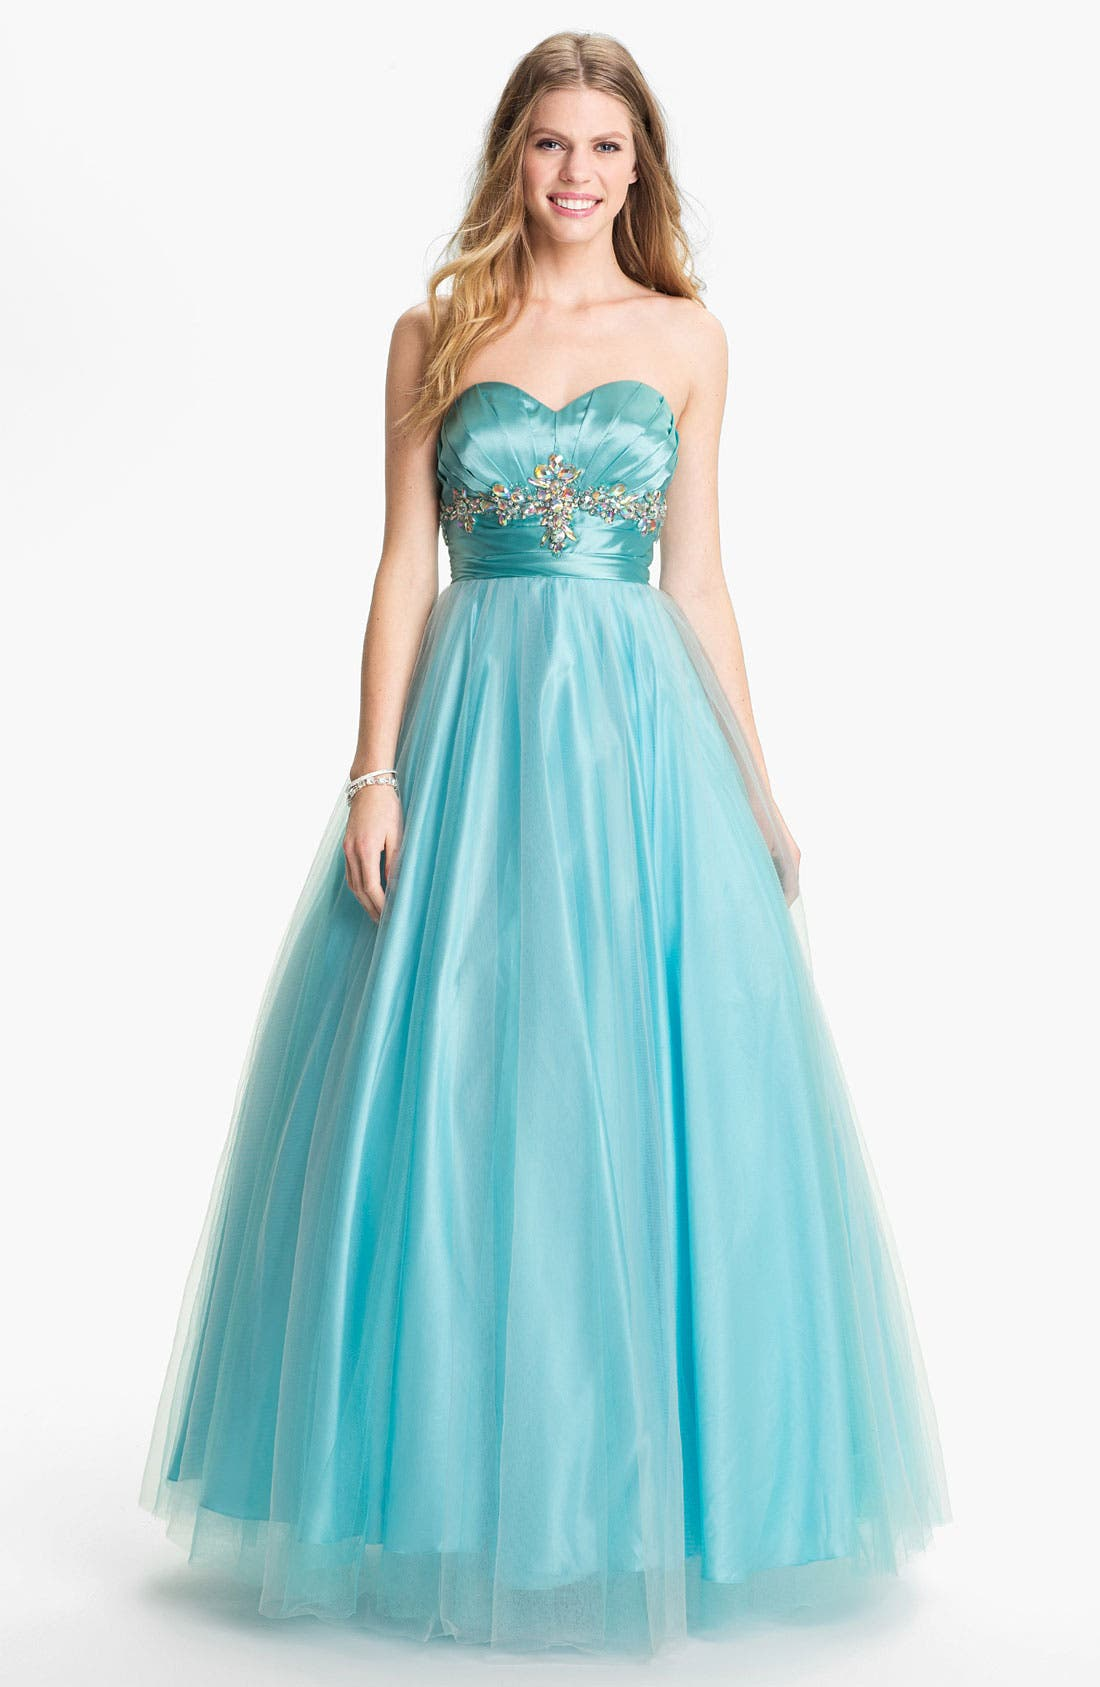 Main Image - Sean Collection 'Princess' Embellished Satin & Tulle Ballgown (Online Exclusive)